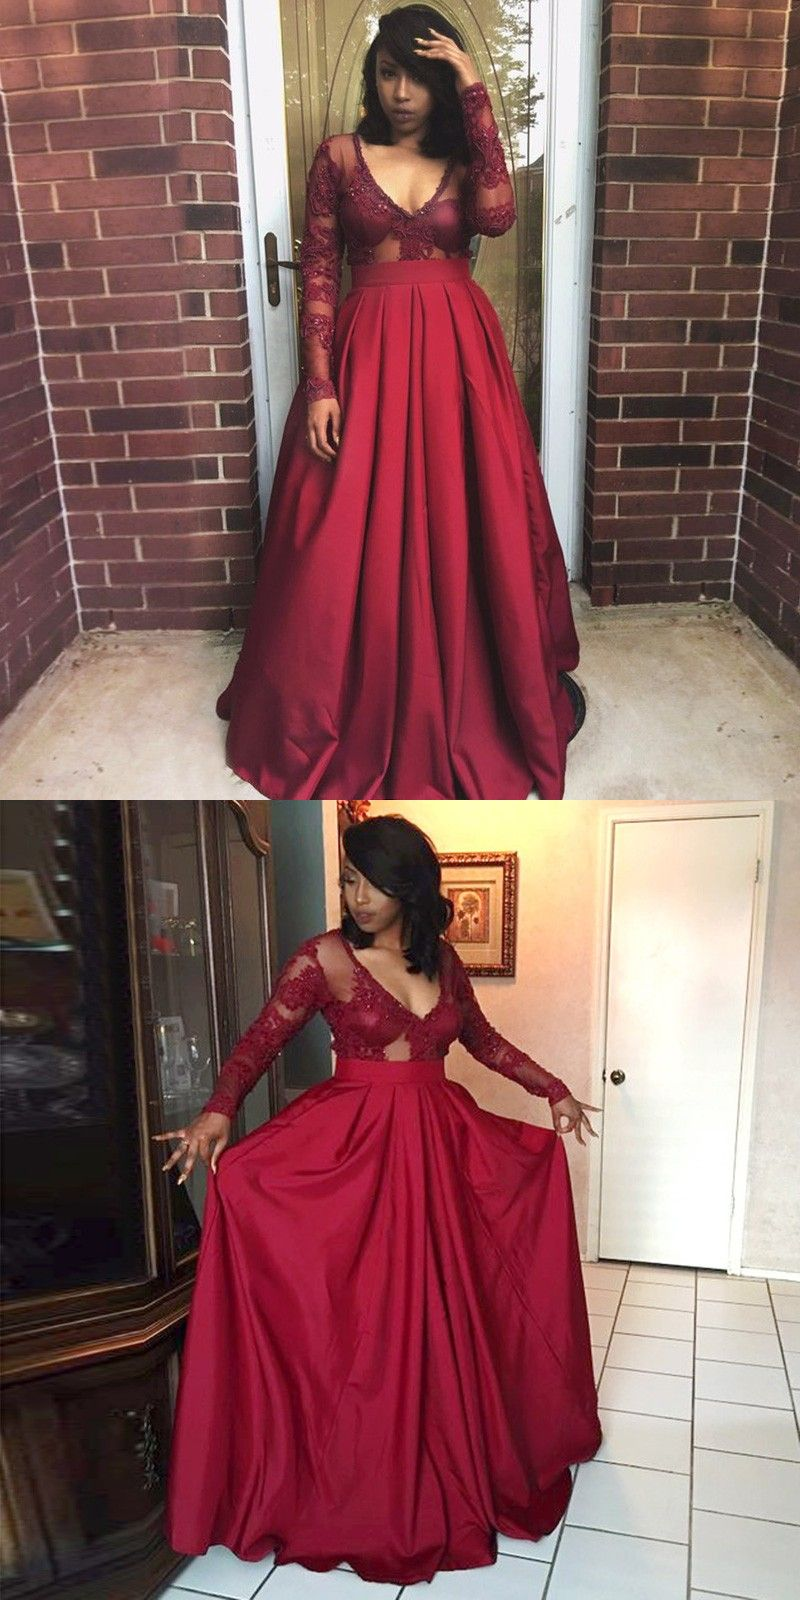 Aline vneck pleated burgundy satin prom dress with pockets sleeves